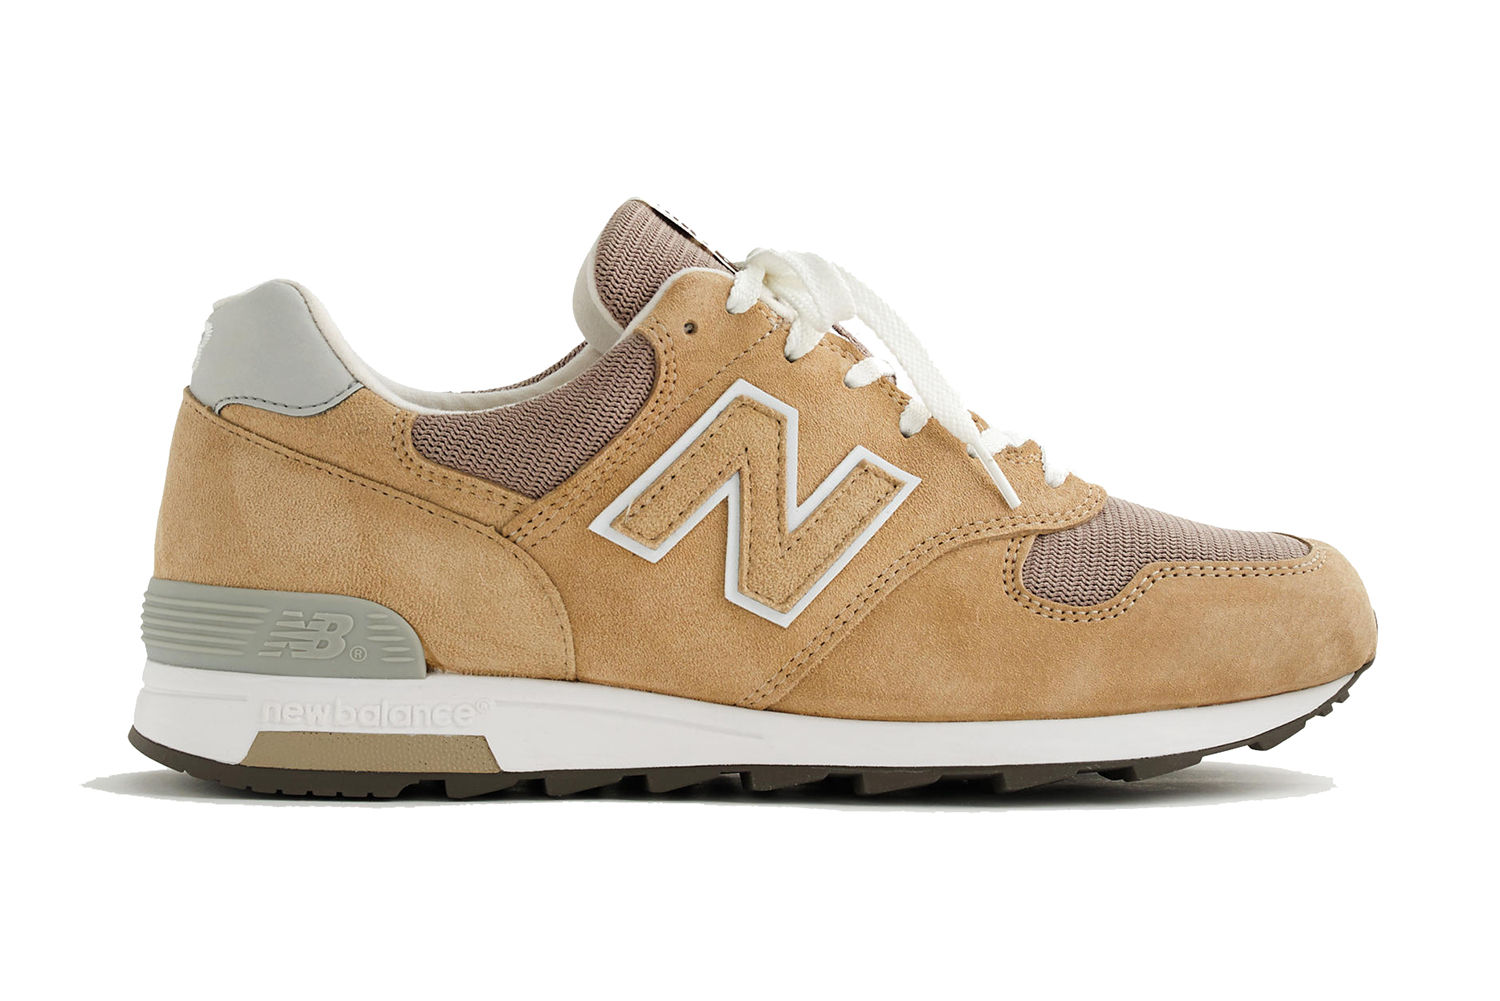 J.Crew & New Balance Take to the Desert for Their New 1400